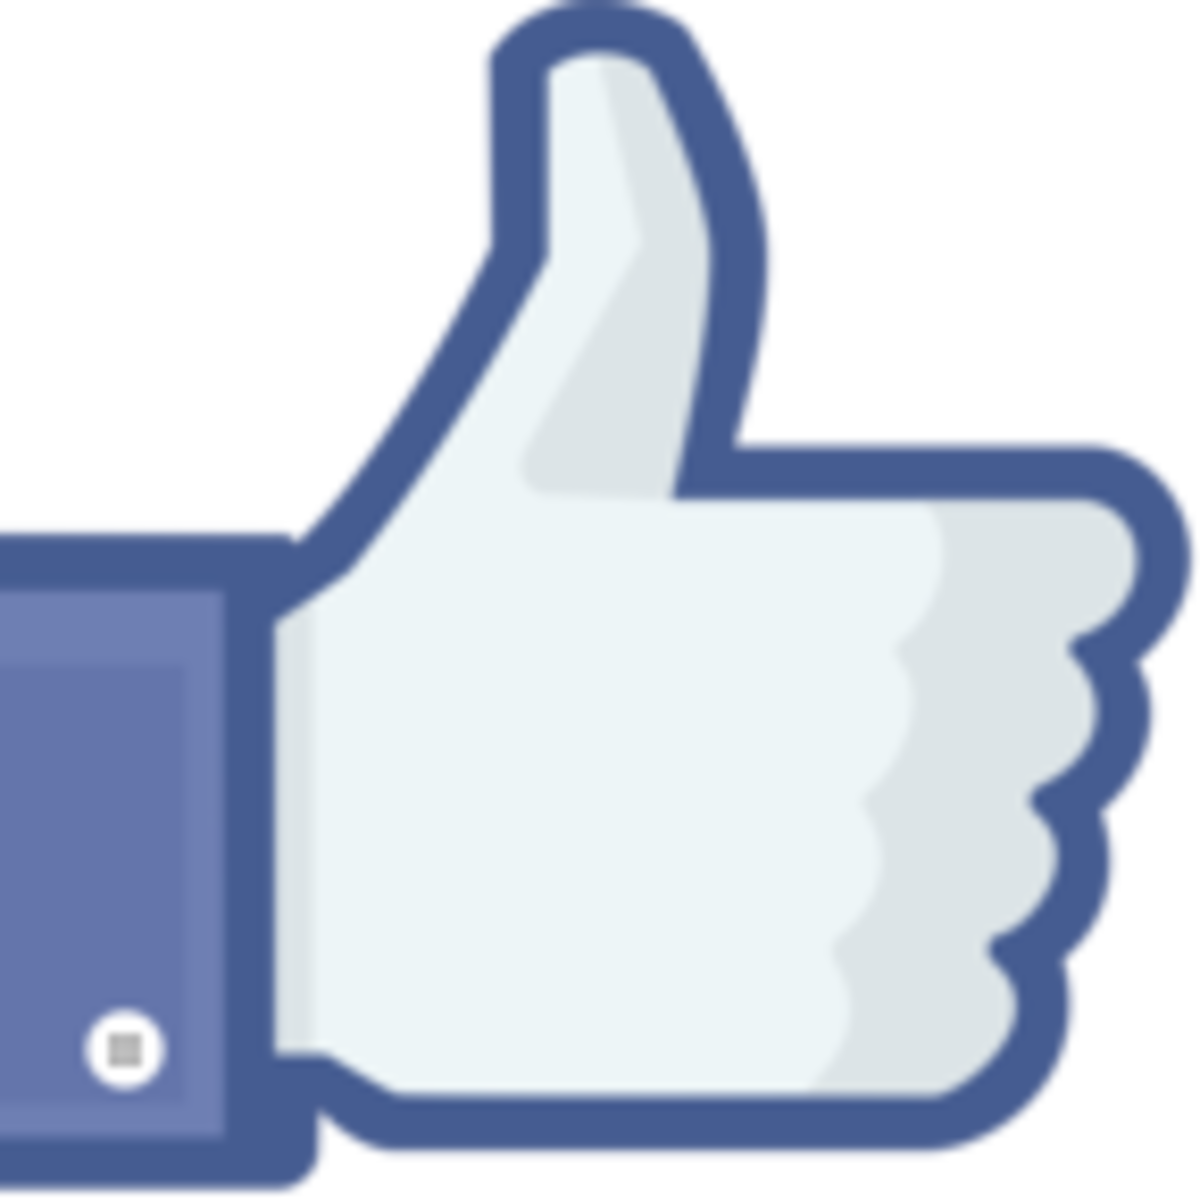 Likes and Comments On Our Facebook Posts